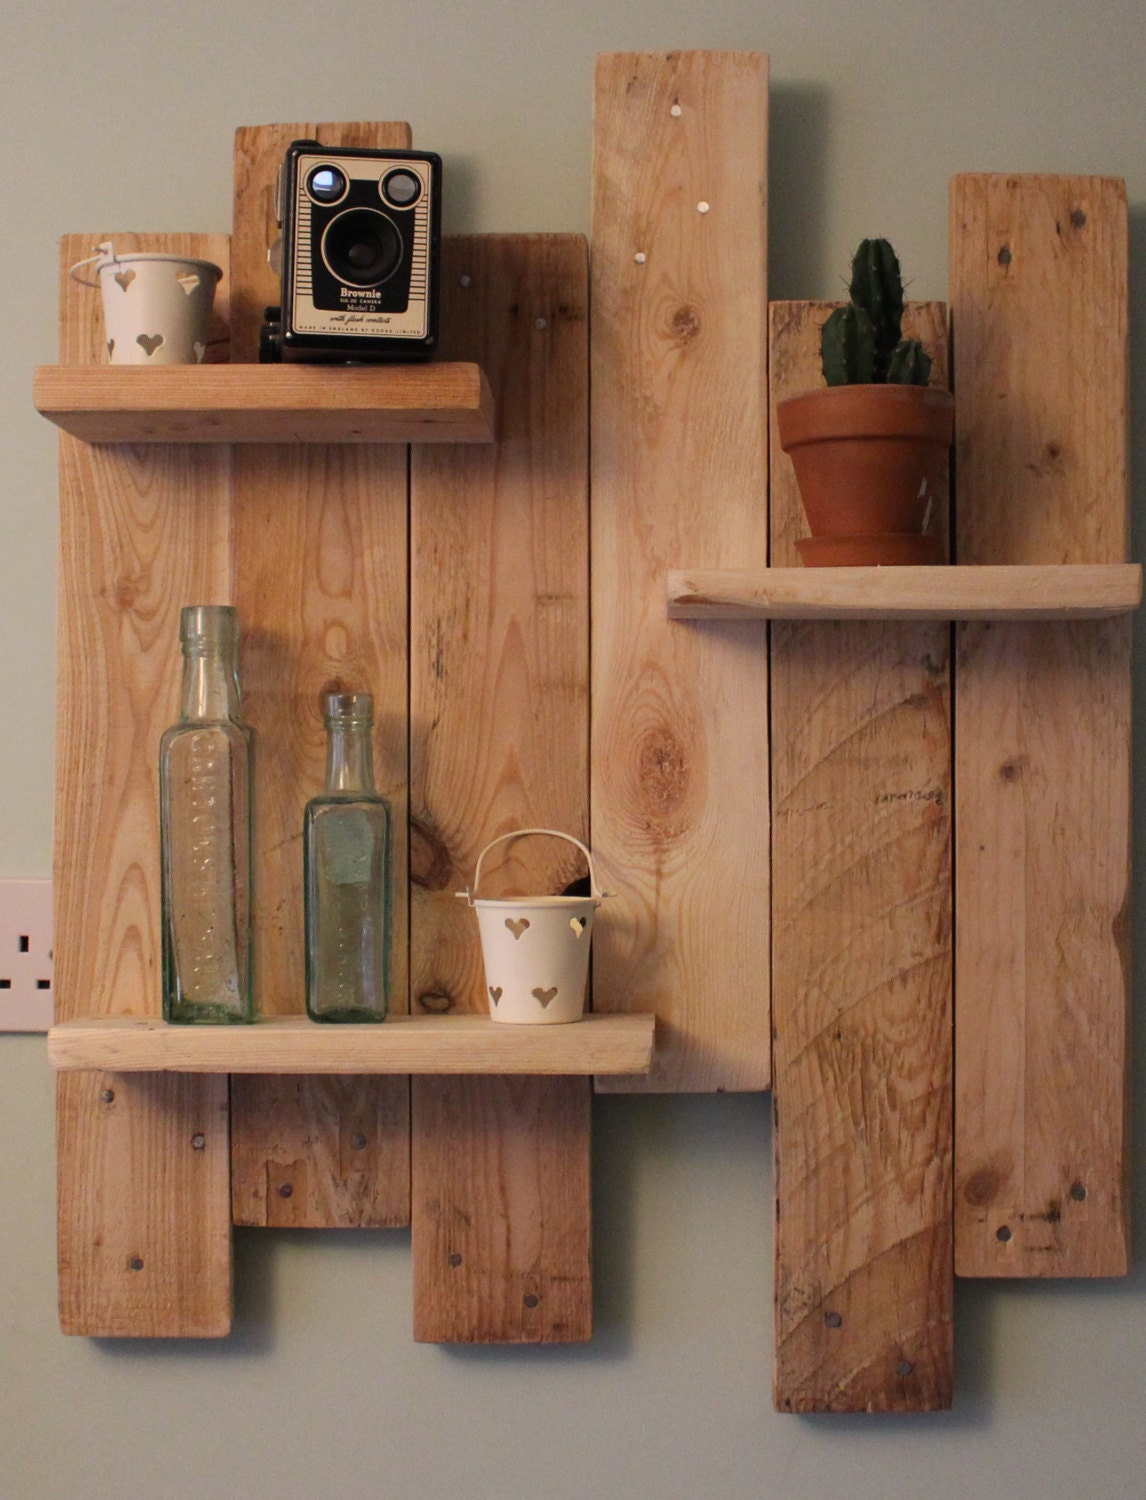 Amazing photo of Reclaimed Pallet Wood Shelves Rustic/Shabby by SunnySideInteriors with #8C603F color and 1146x1500 pixels